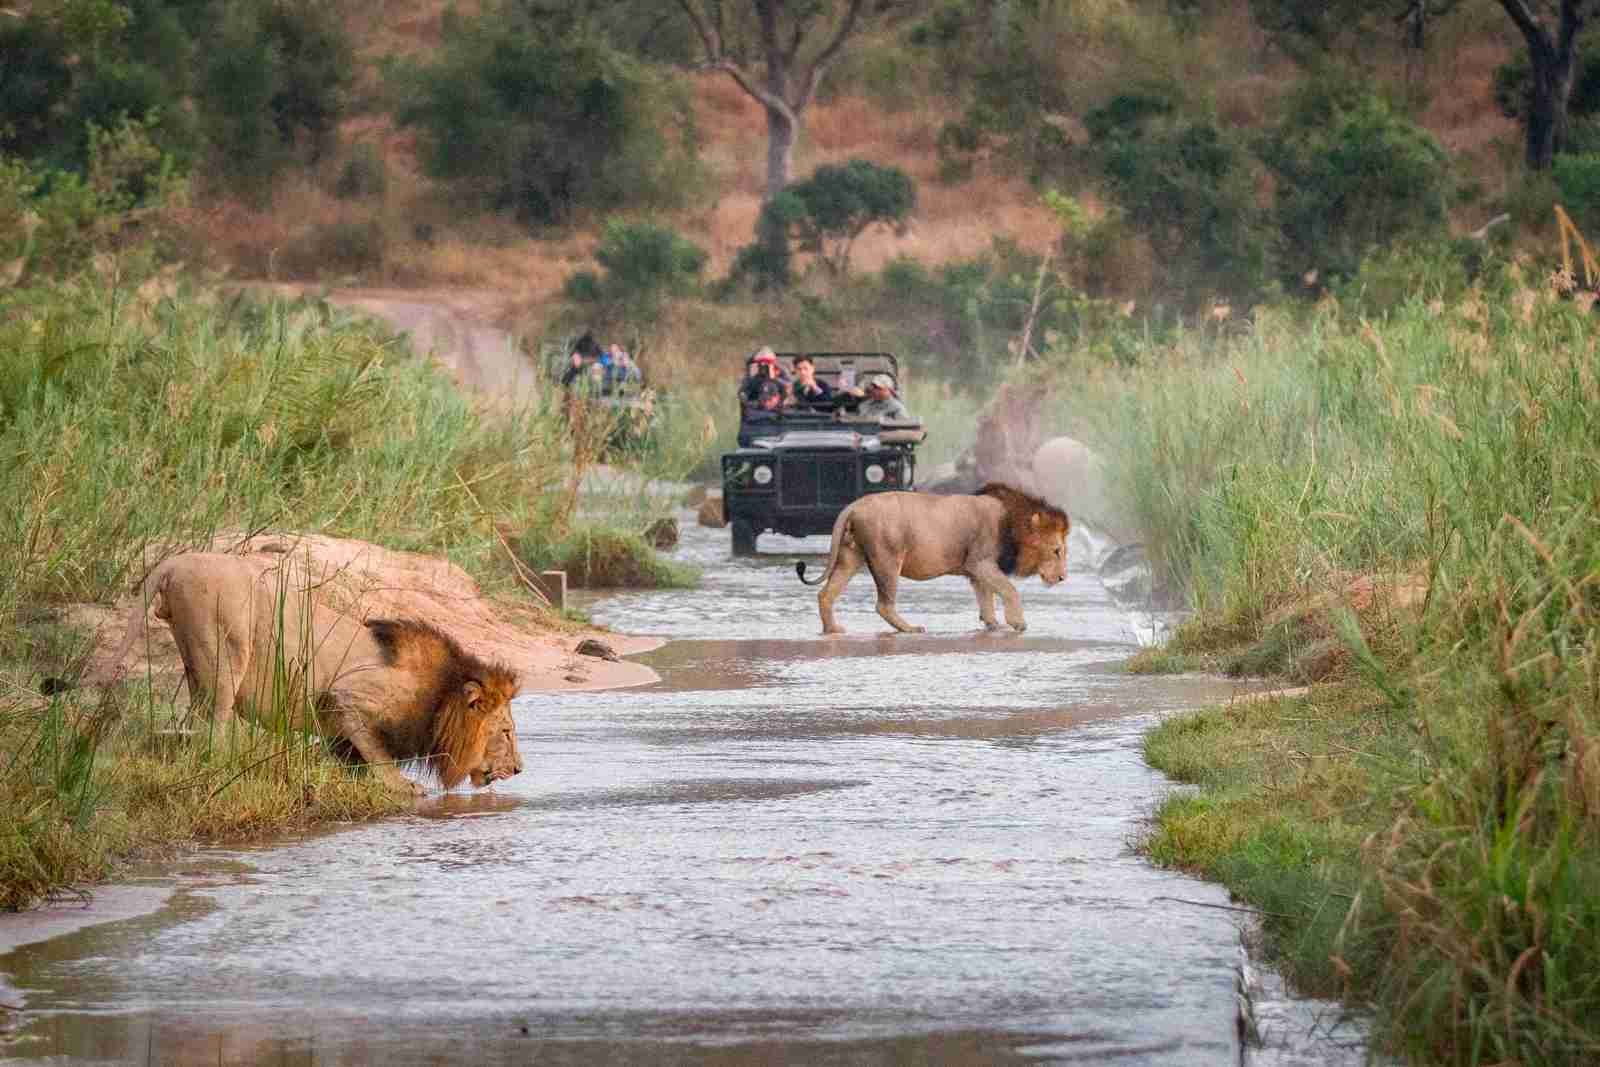 (Photo by Londolozi Images/Mint Images/Getty Images)